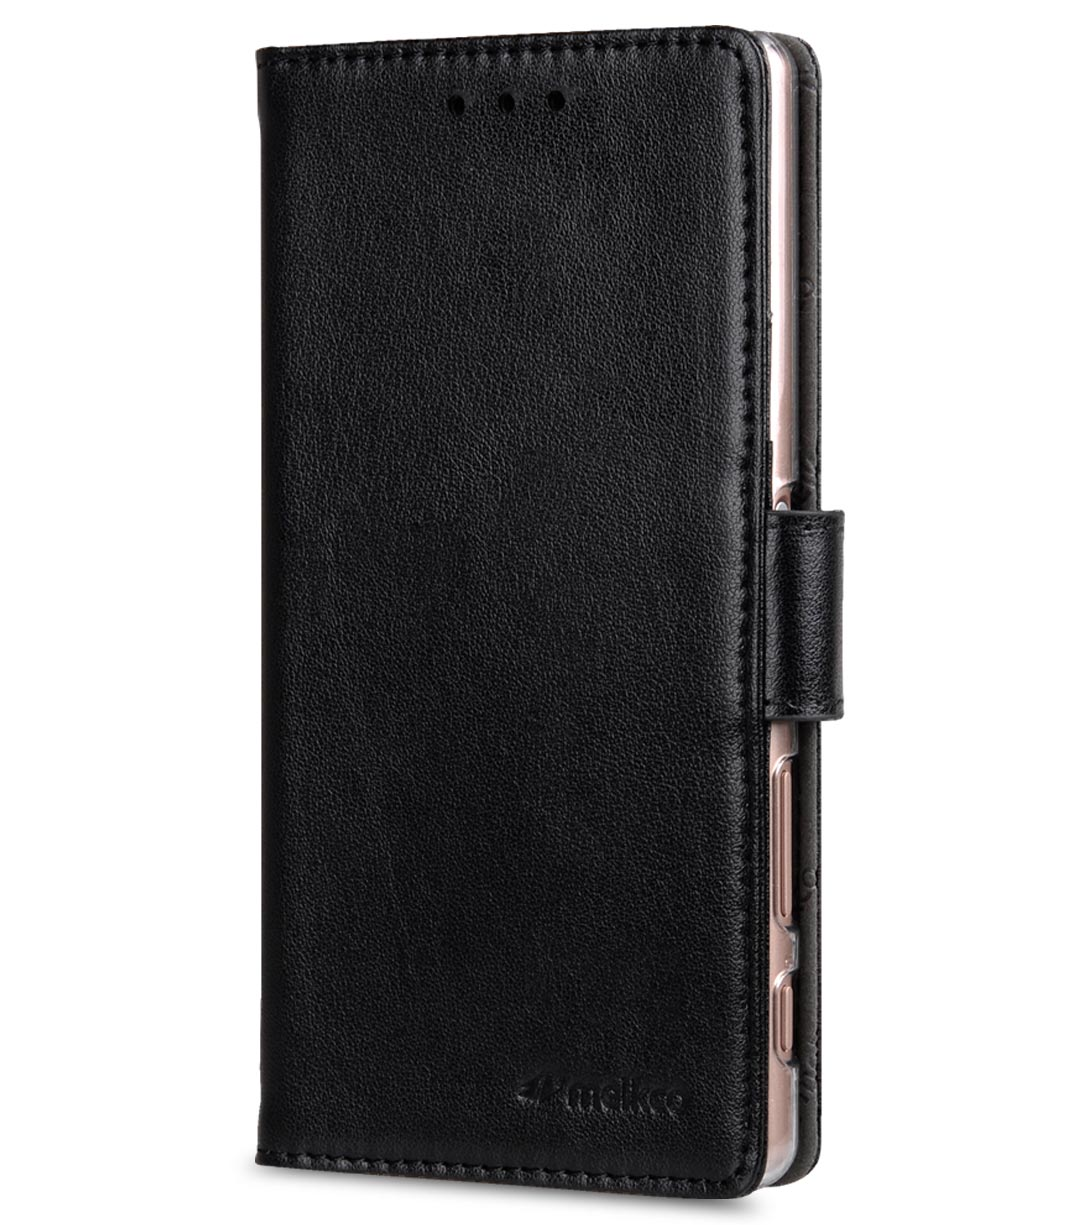 Melkco Mini PU Cases Wallet Book Clear Type for Sony Xperia Z5 Compact - Black PU